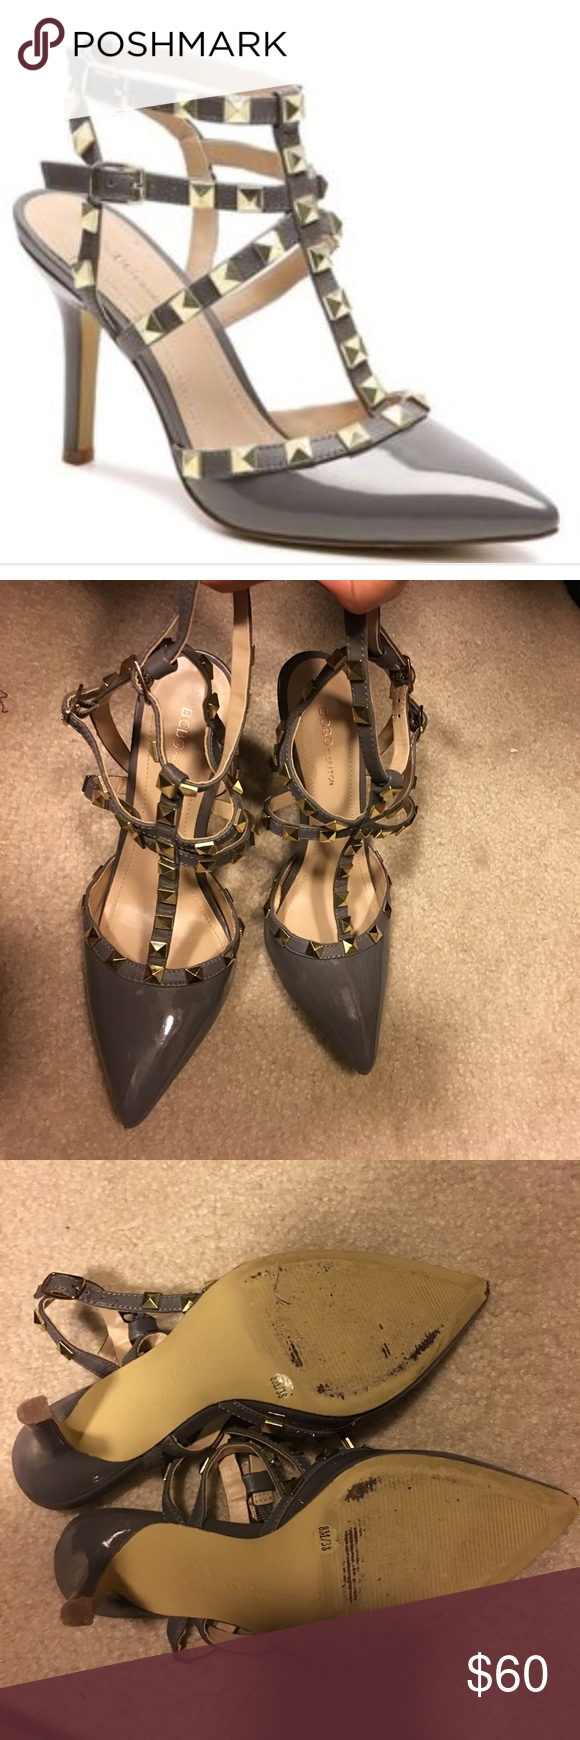 Grey rockstud heels BCBG grey rockstud heels with gold studs, a great alternative to Valentino ! Worn once but too snug on me so selling! These are GORGEOUS !!! BCBGeneration Shoes Heels